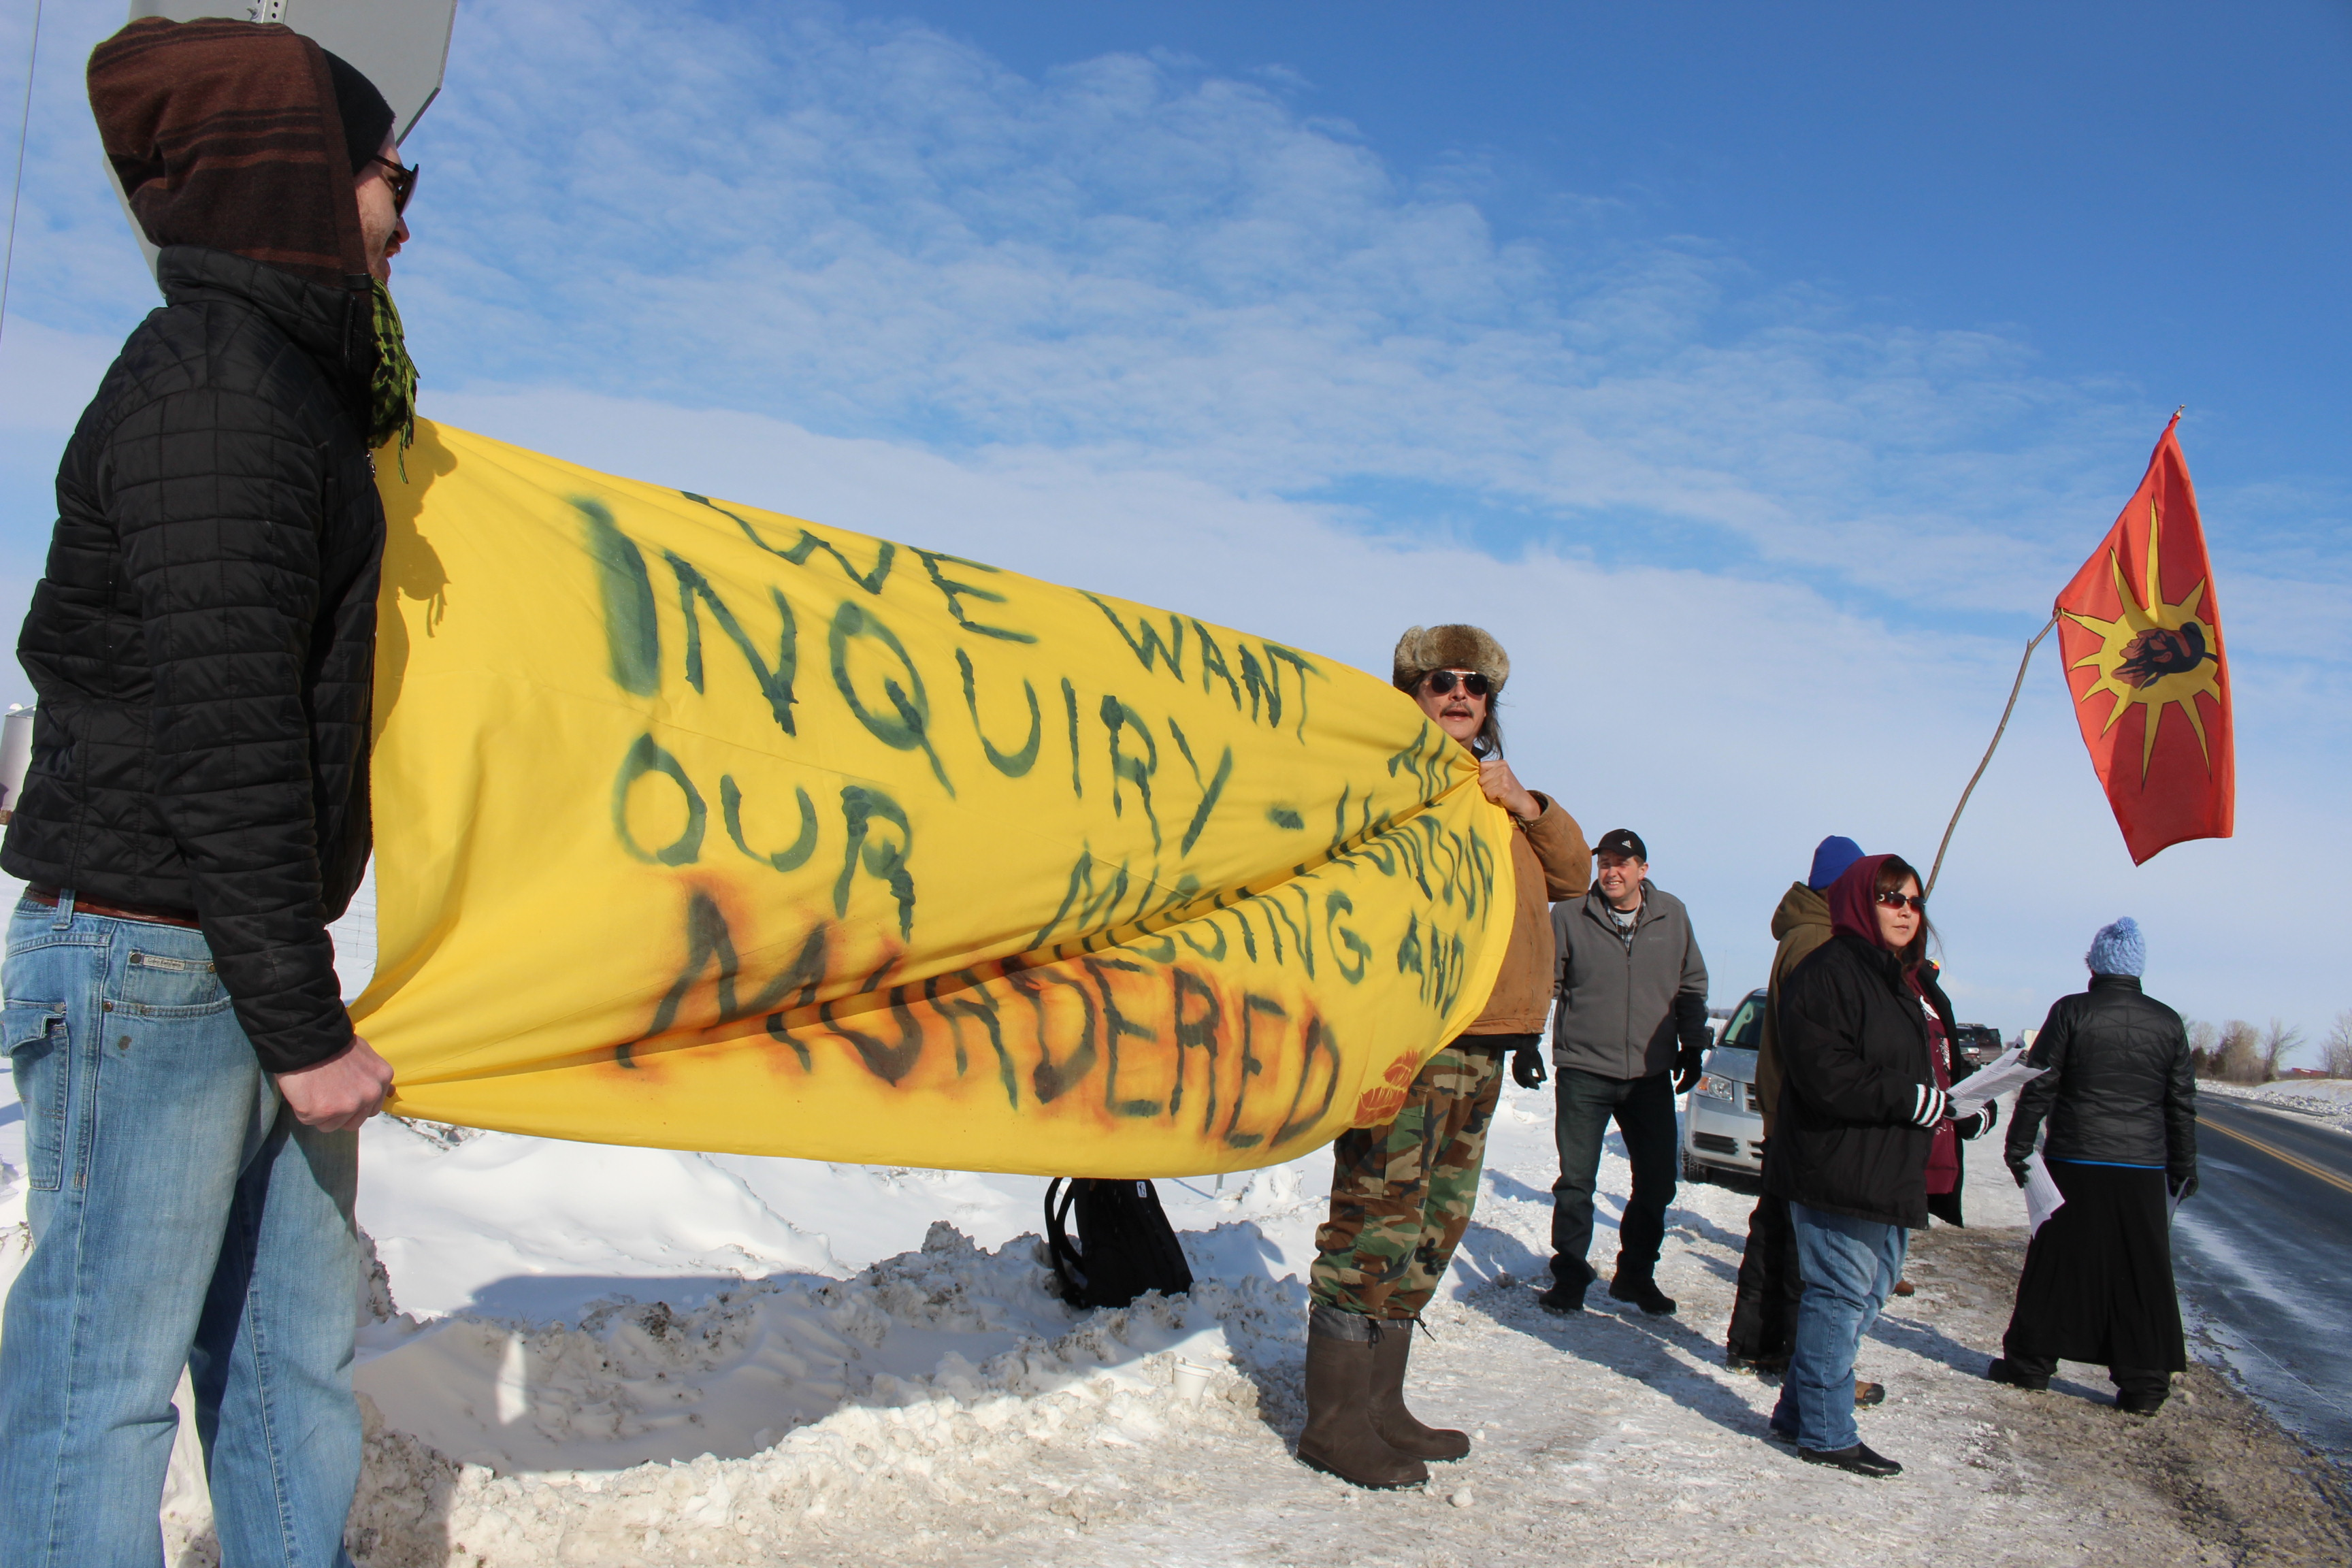 Walpole Island residents join the nationwide #ShutDownCanada movement at the intersection of Hwy. 40 and Dufferin Ave. on February 13, 2015. (Photo by Jason Viau)